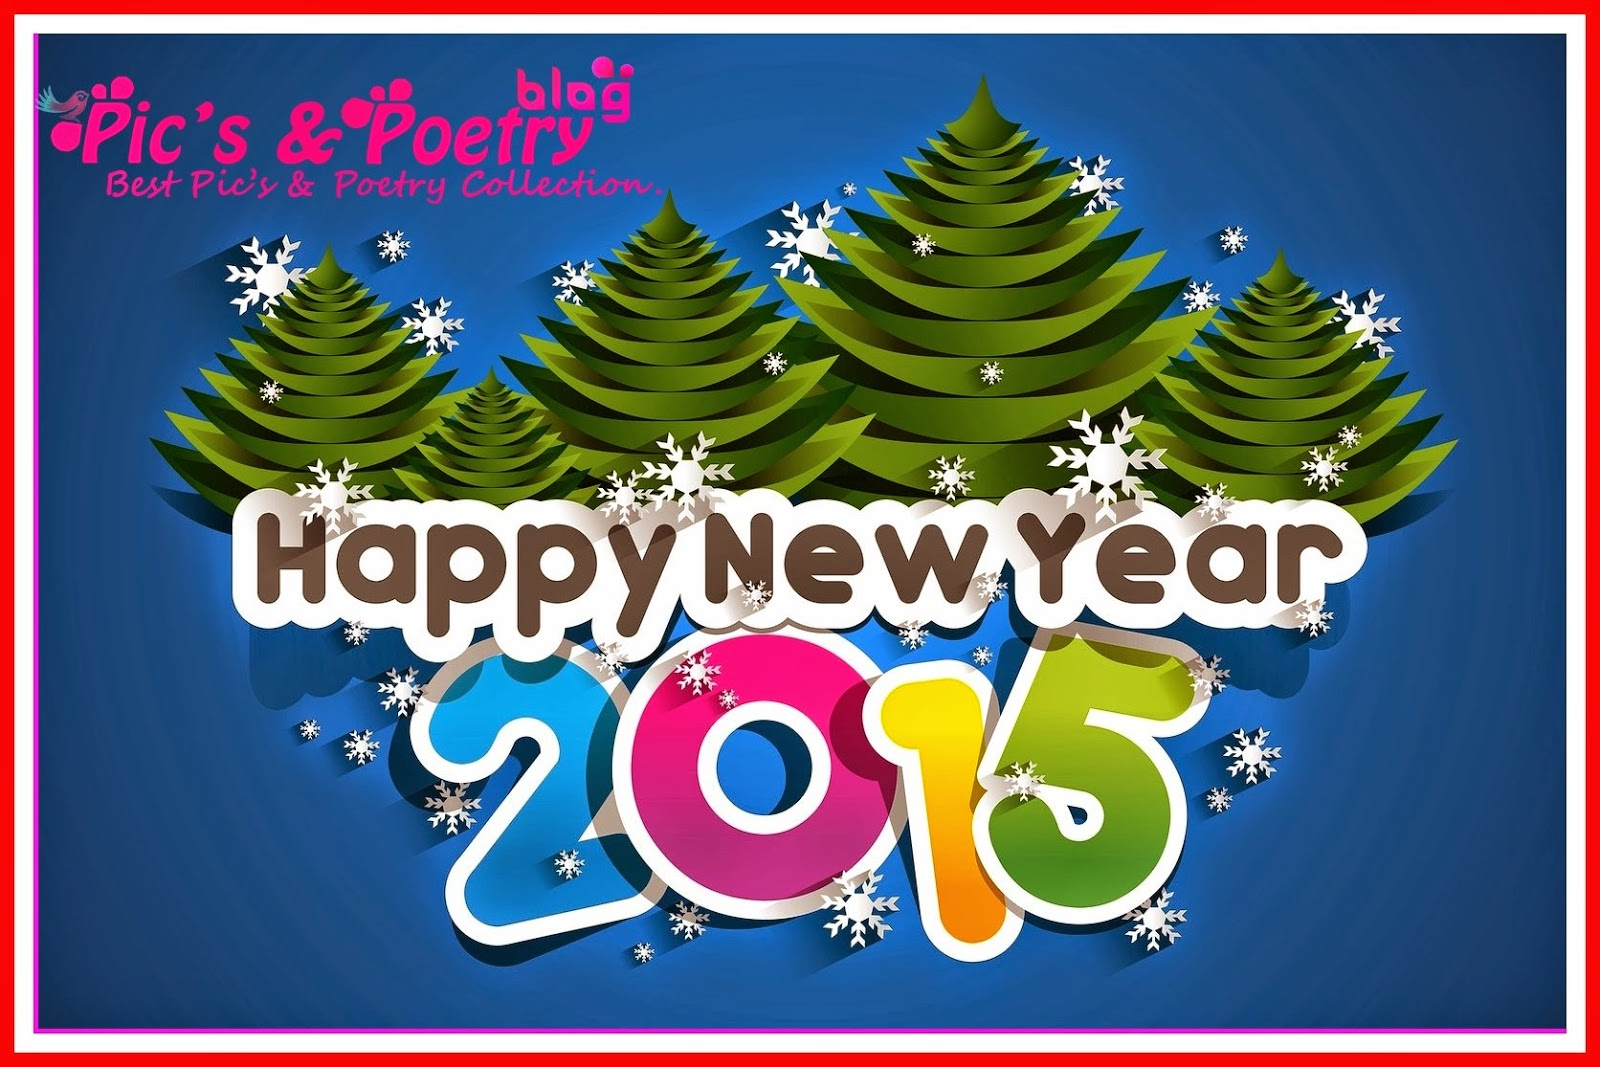 Happy New Year 2015 Greetings With Images And Quotes